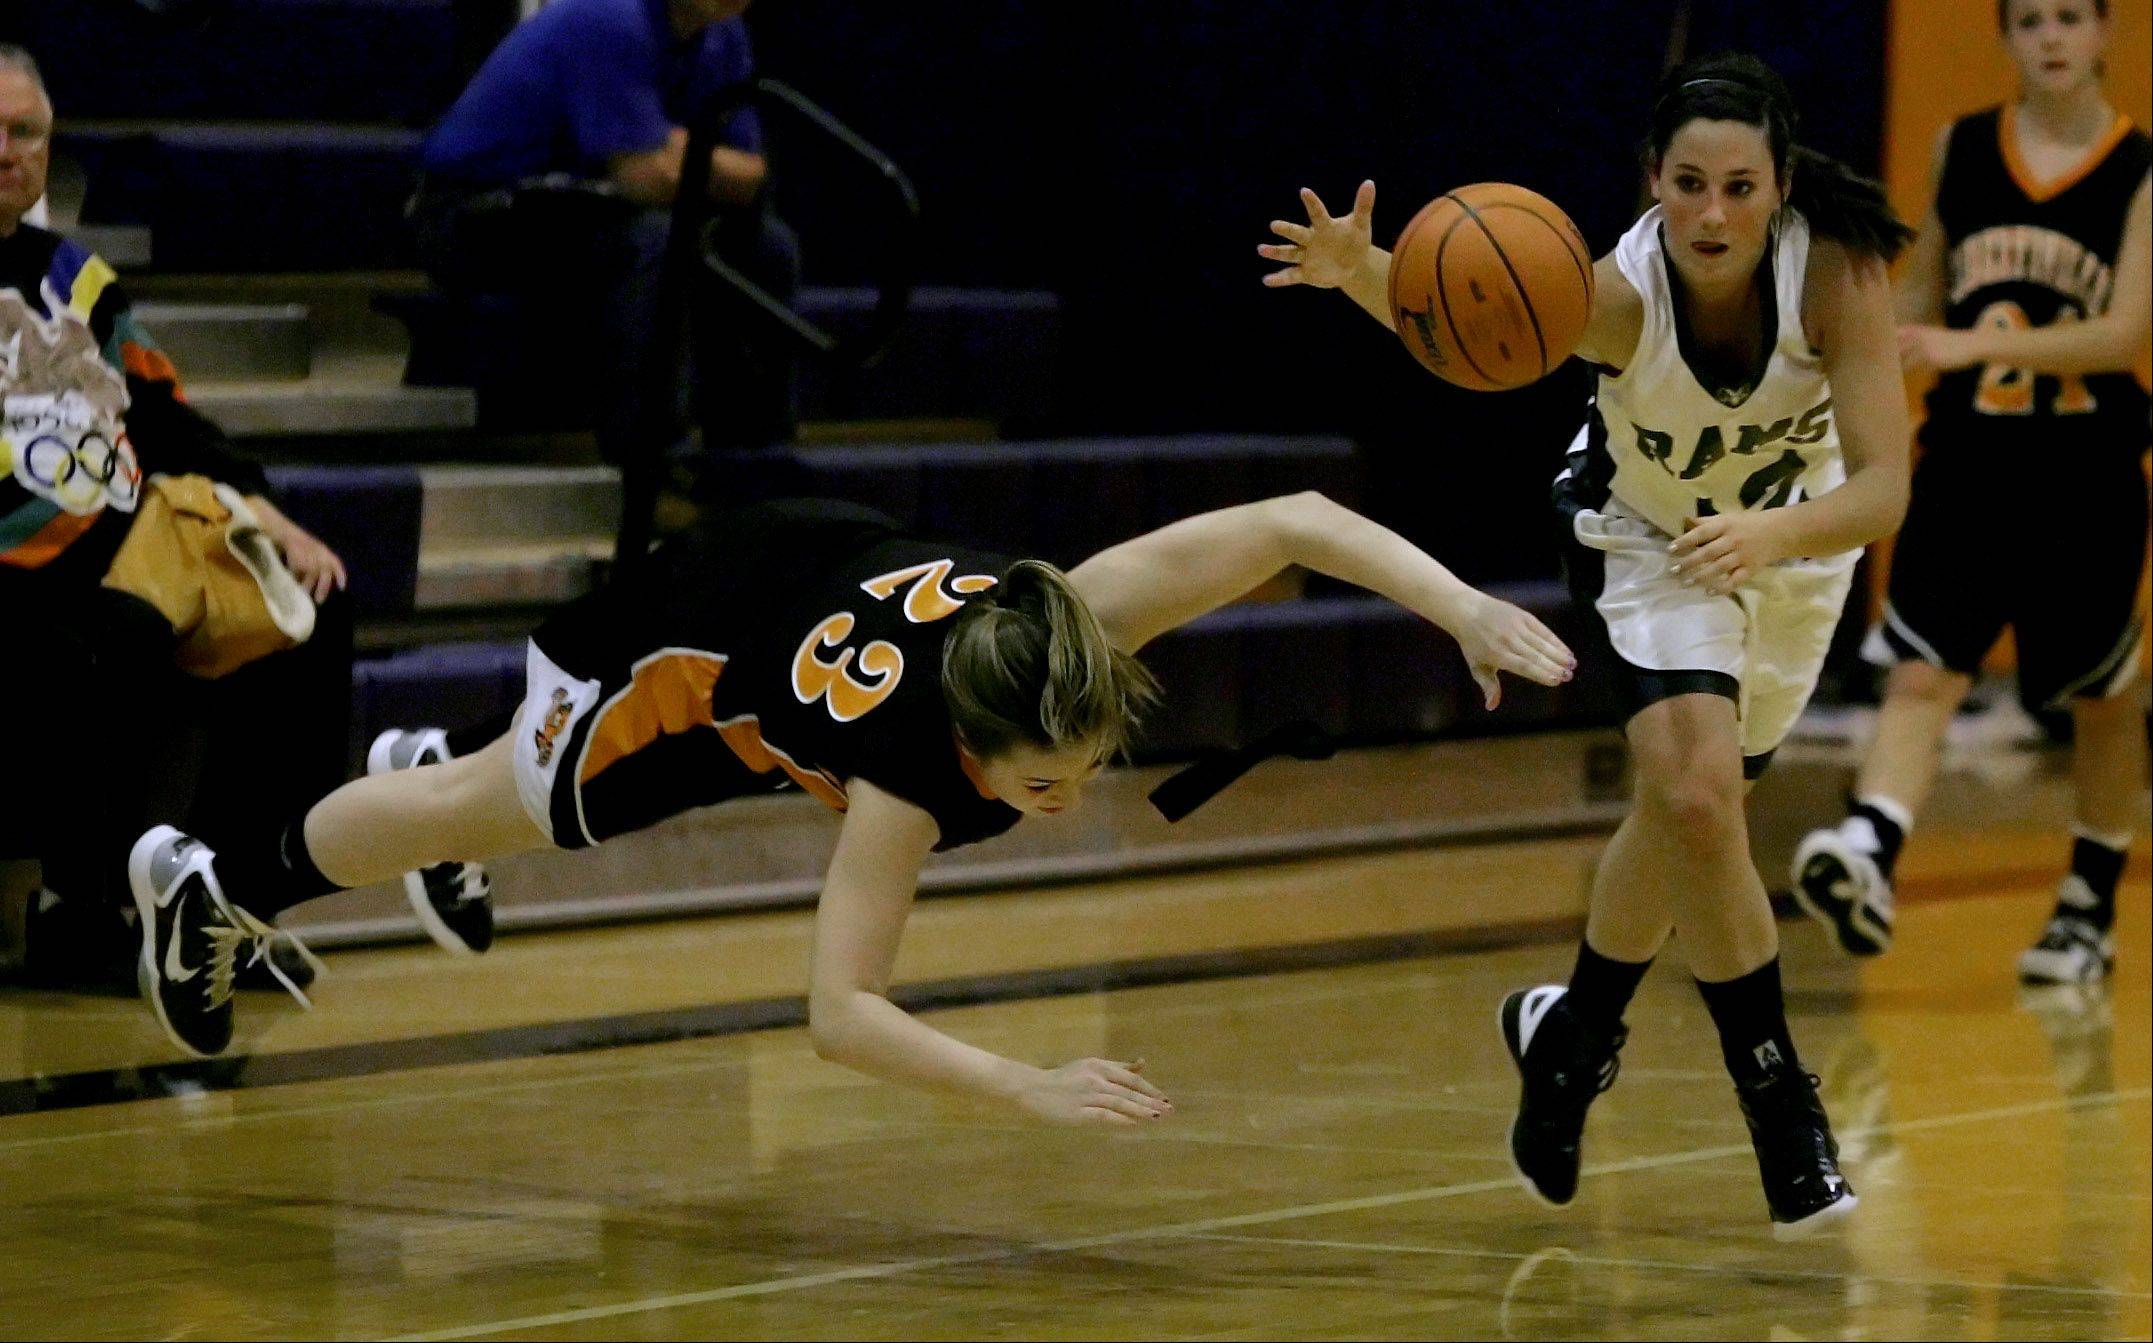 Libertyville Molly Moon, left, and Grayslake Central's Claire Brennan dive for a loose ball during Thursday's game at the Bison Classic Girls Varsity Basketball Thanksgiving Tournament in Buffalo Grove.